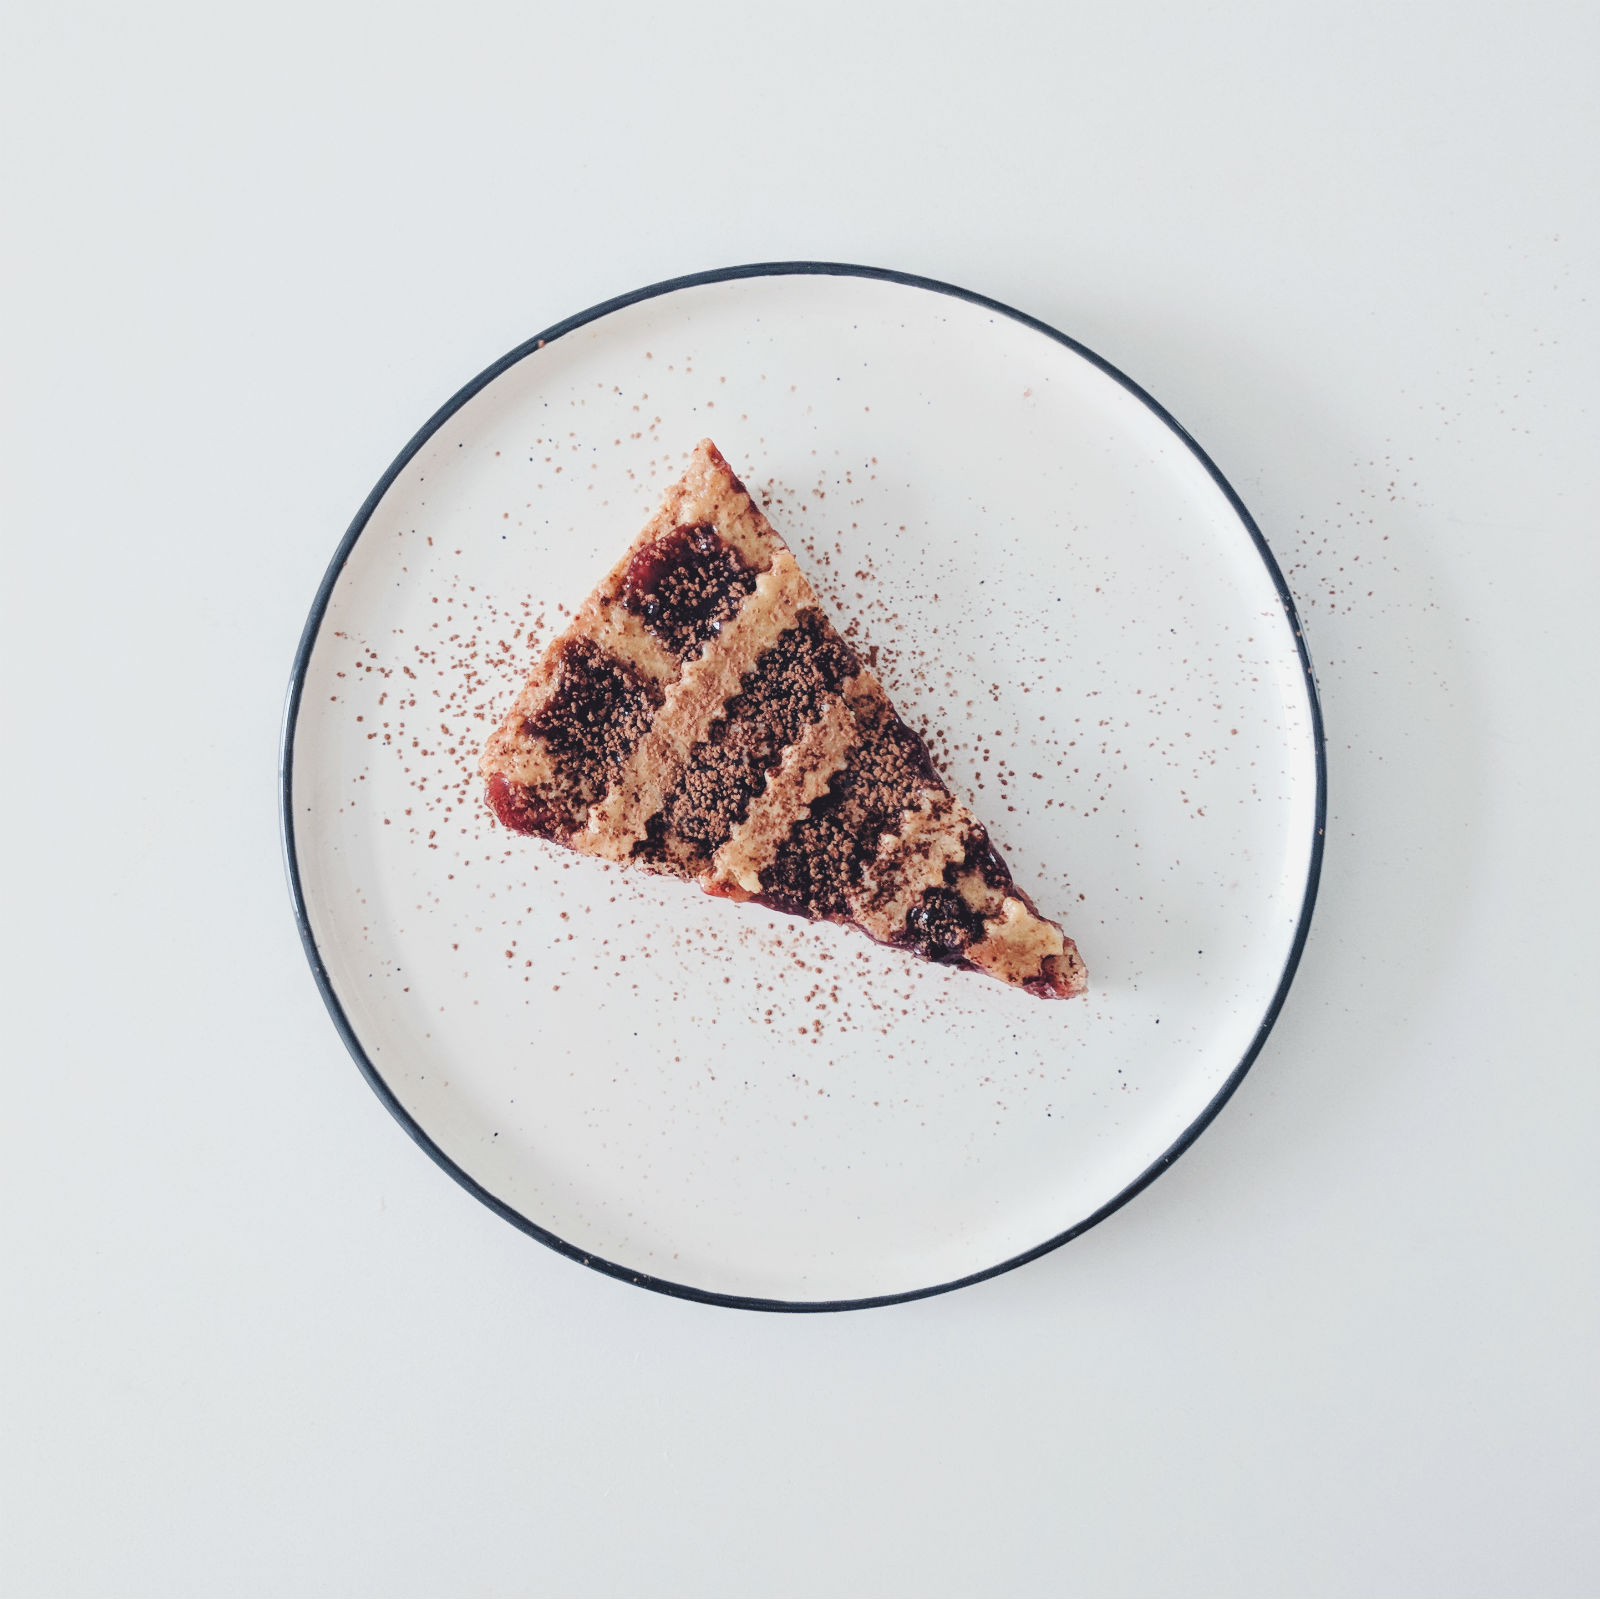 Crostata di marmellata (jam tart) with a dusting of cacao.